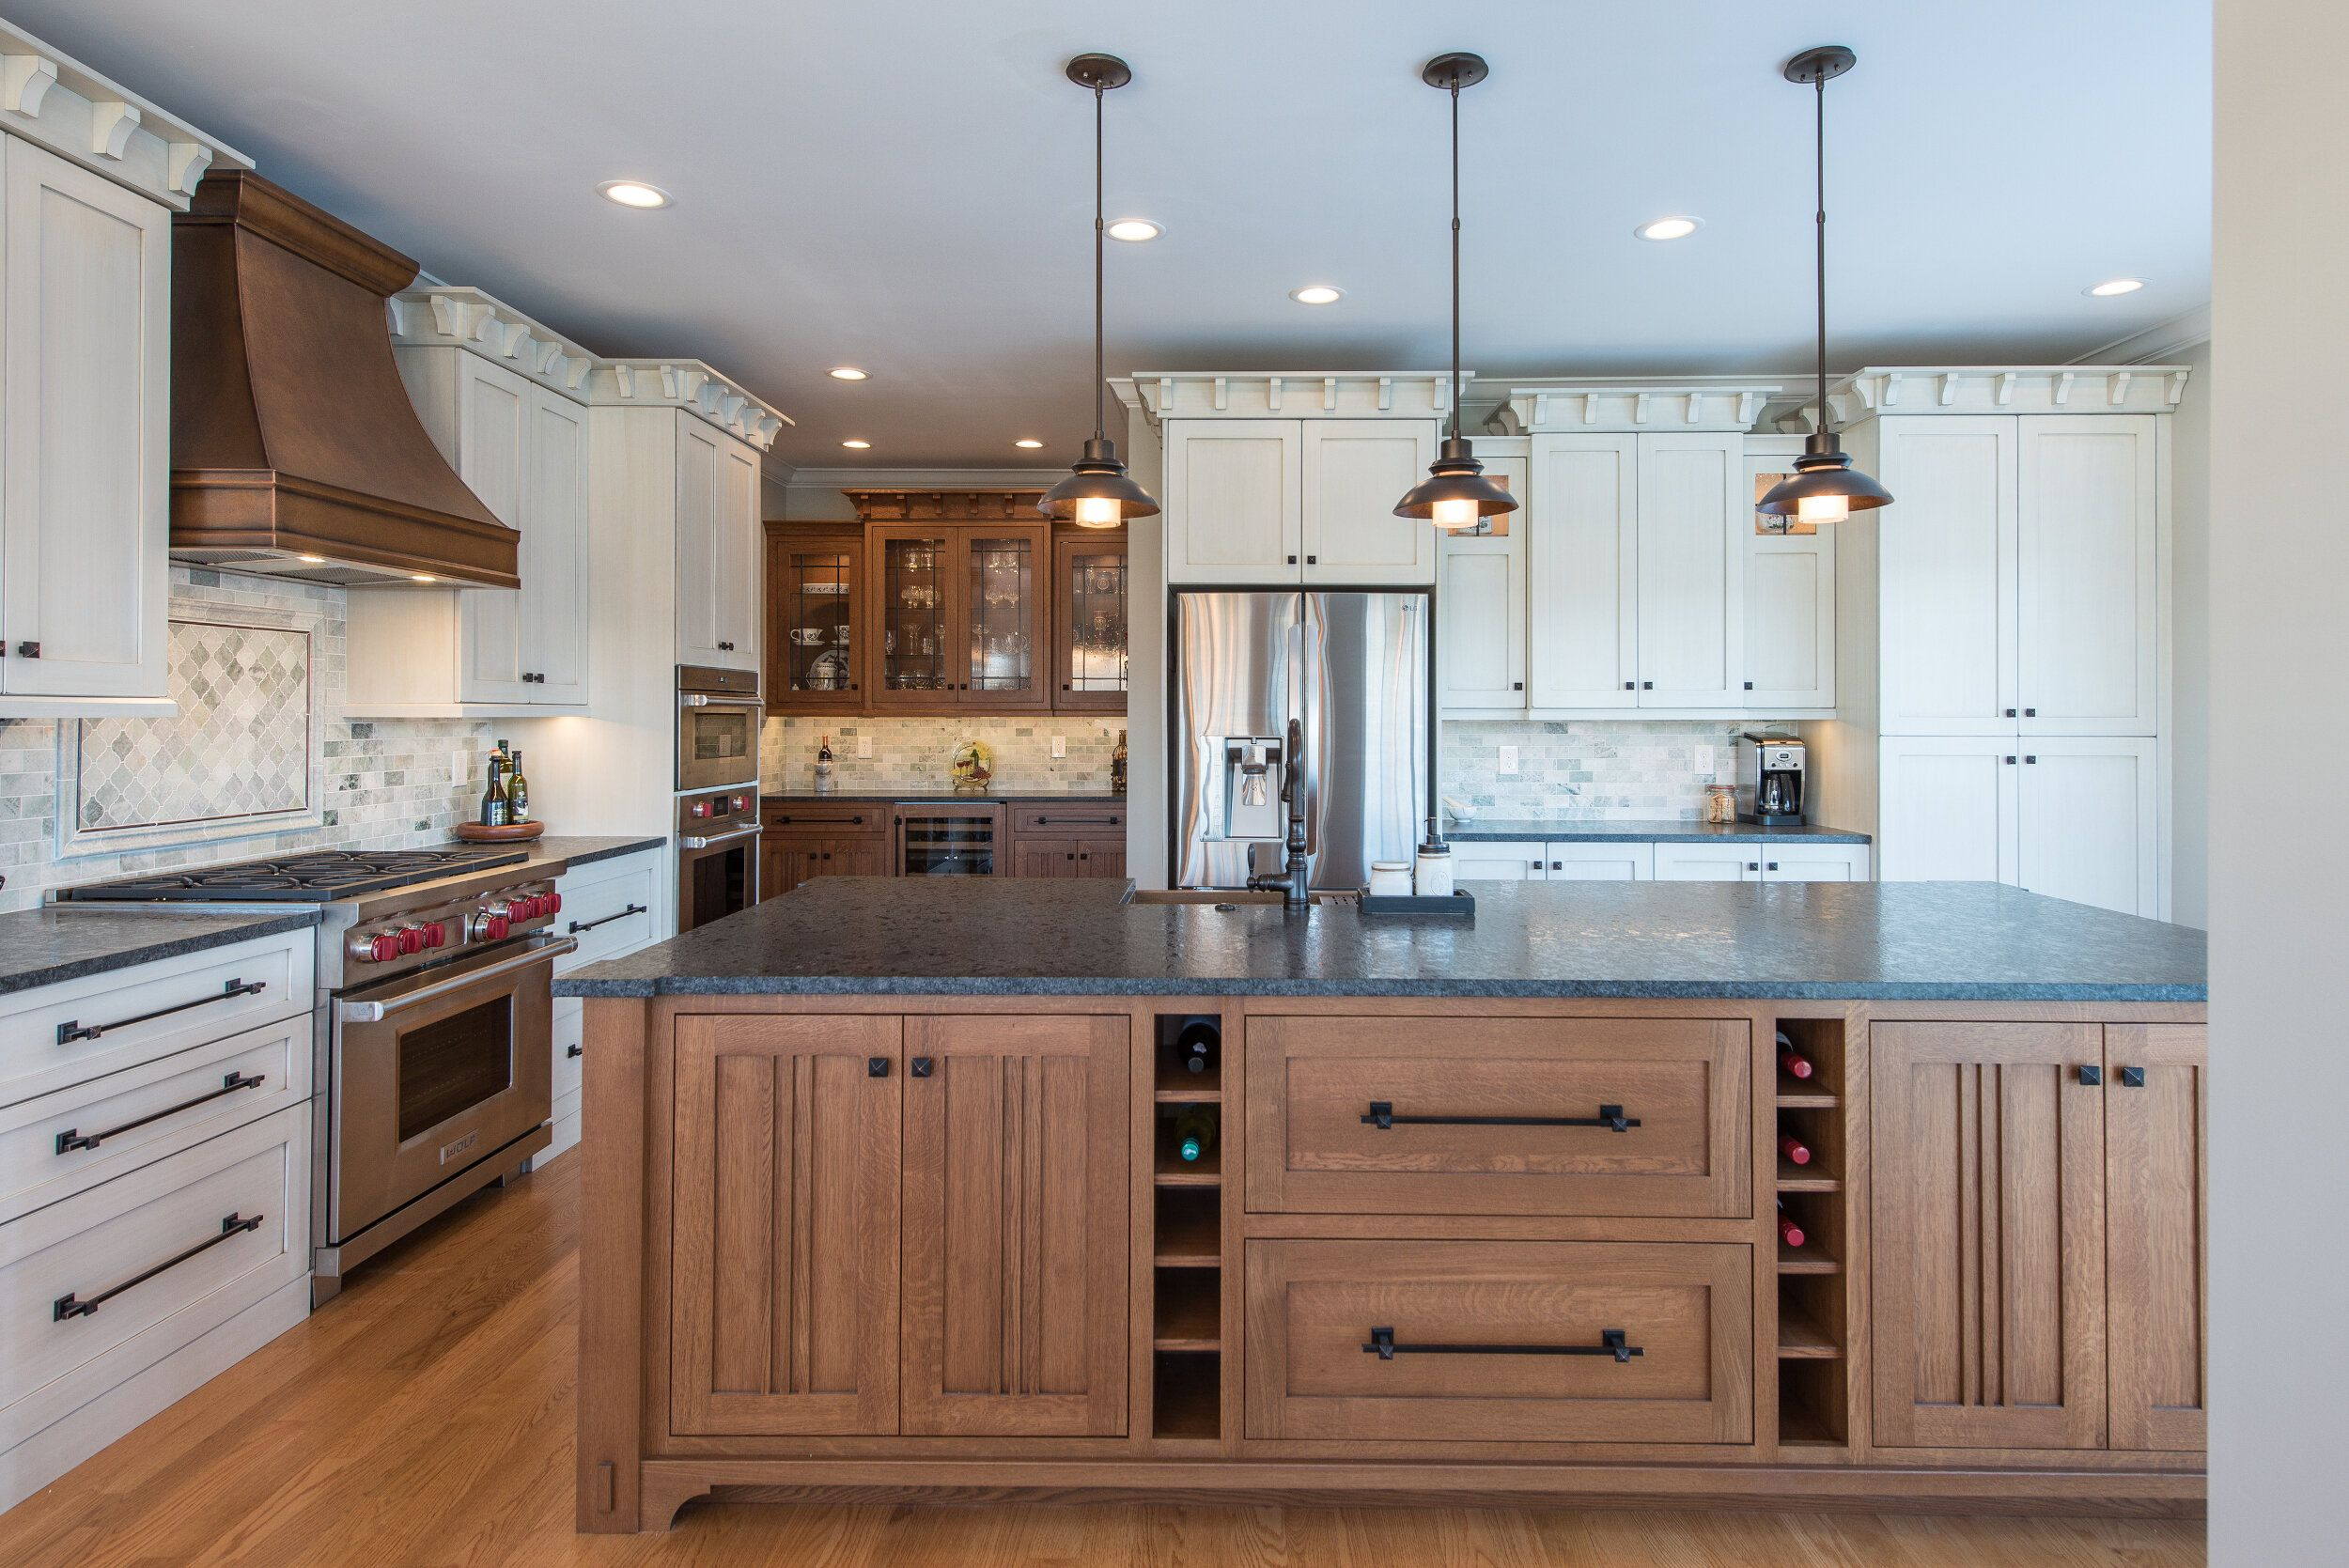 Council Fire Drive Sticks 2 Stones Design Custom Cabinetry In Knoxville Tennessee Custom Kitc In 2020 Custom Kitchen Cabinets Classy Kitchen Kitchen Remodel